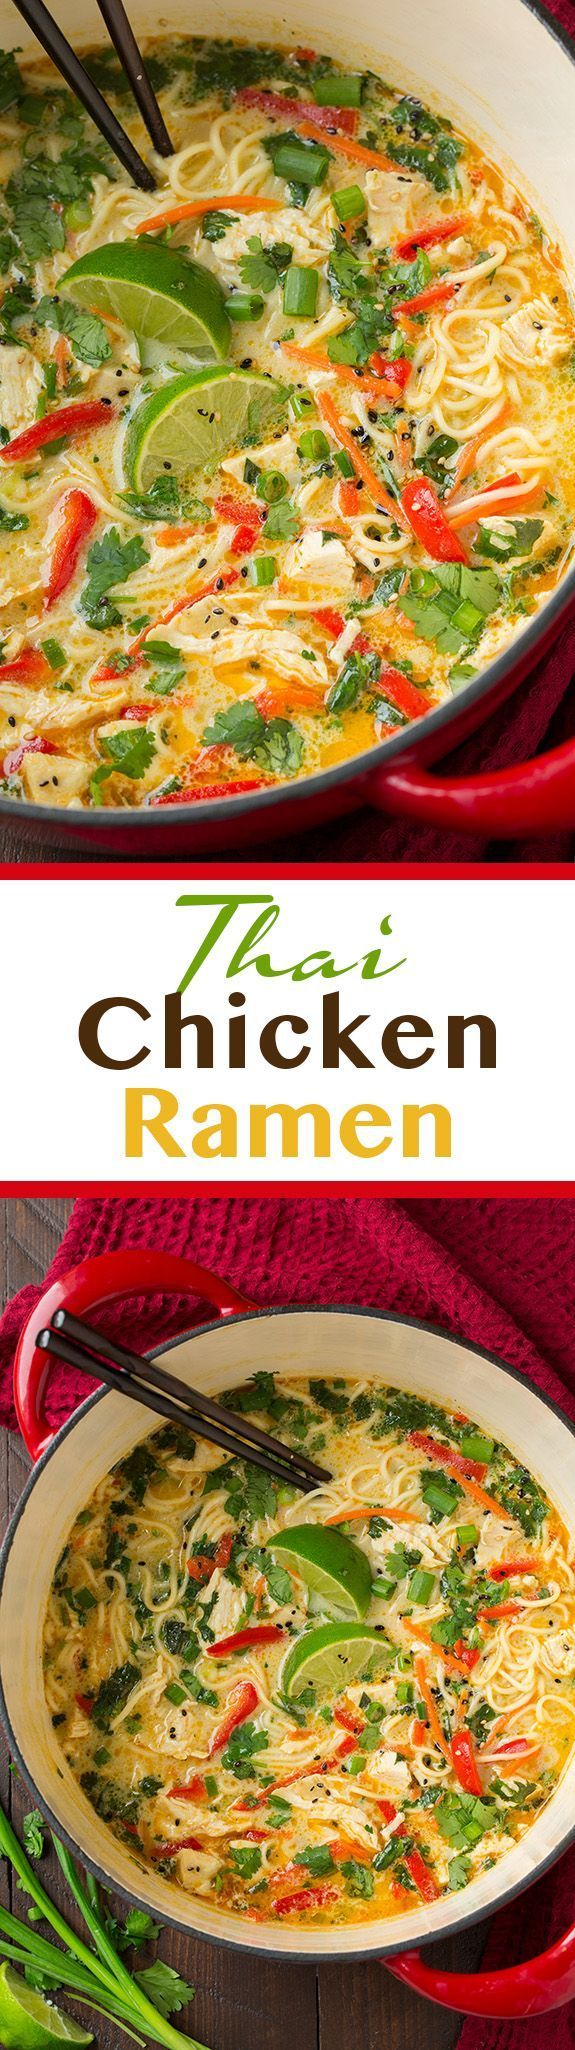 Thai Chicken Ramen - this is AMAZING! Easy to make and seriously so good! Definitely add the peanuts! #RAOHRamen #spon